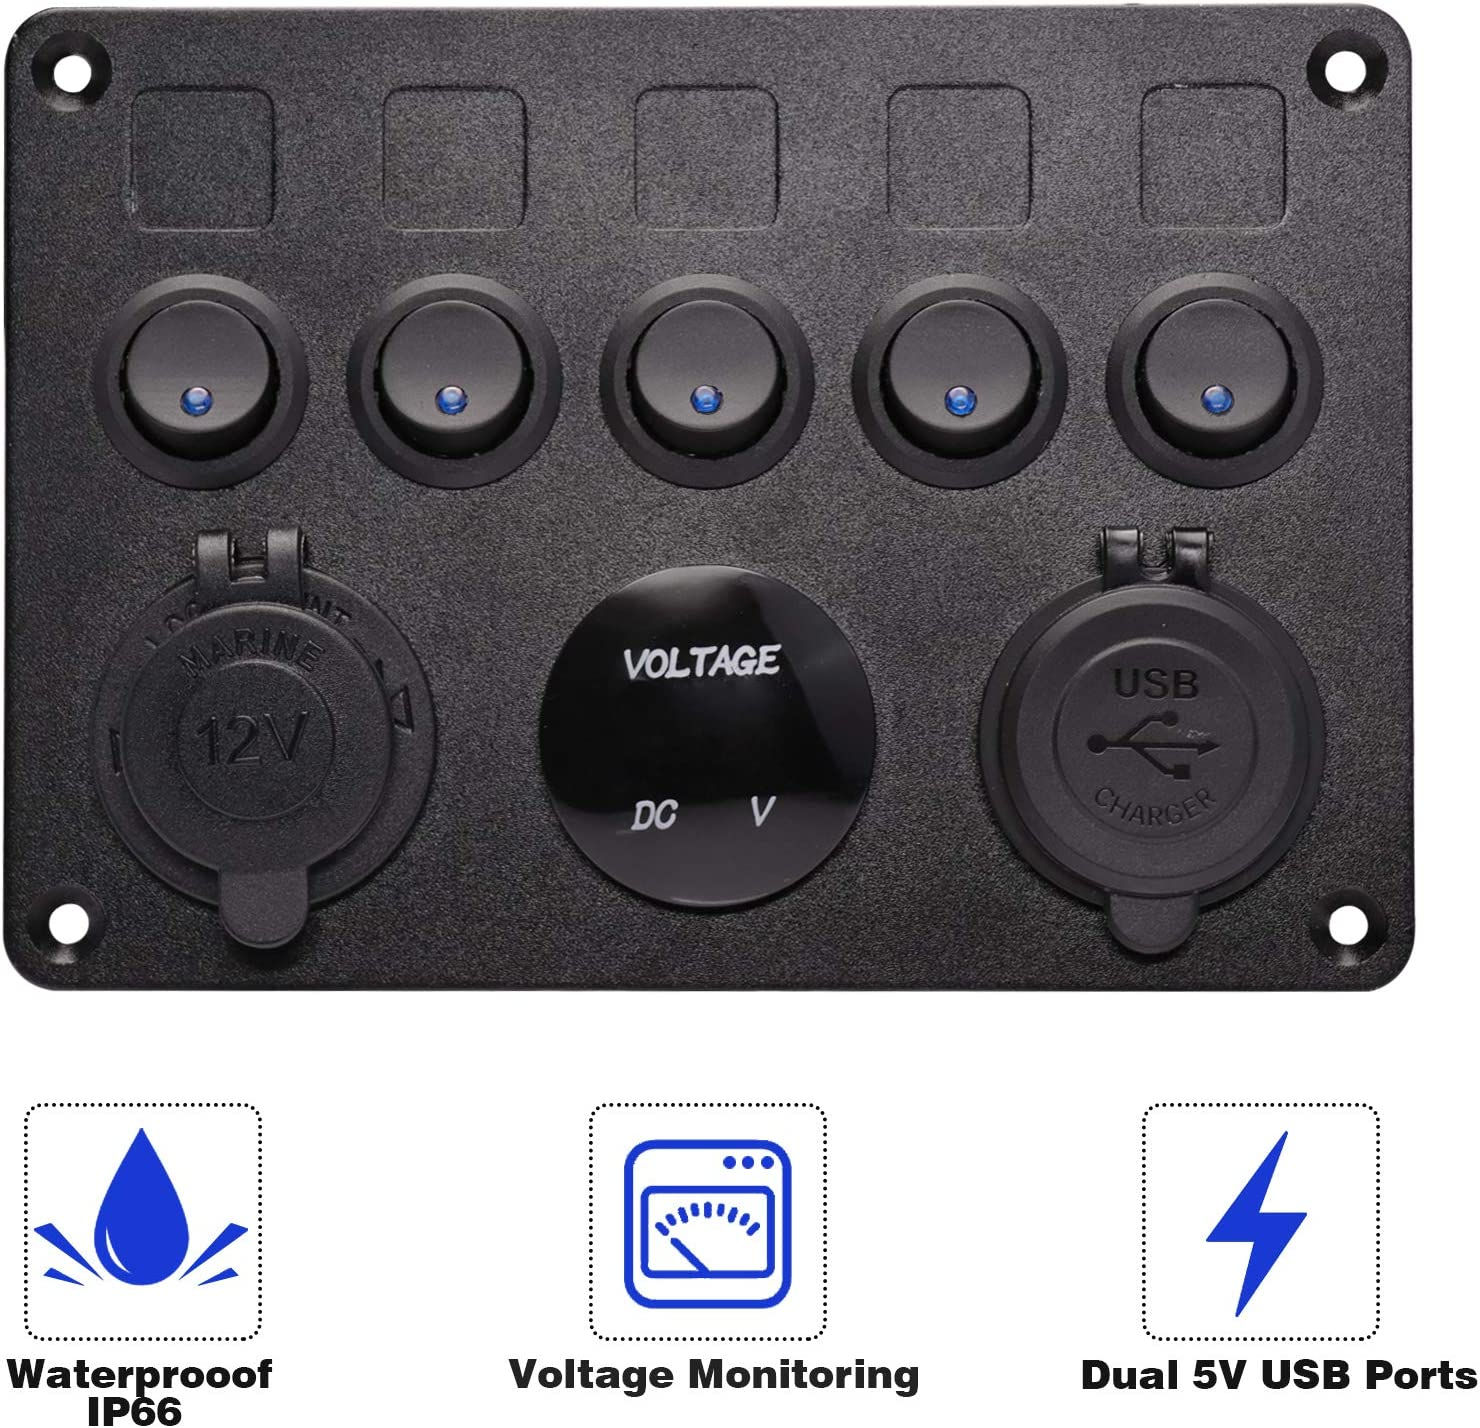 12V Waterproof Led Switch Panel for RV Car Truck Marine Boat Elitezip Toggle Switch Control Panel Voltmeter Dual USB Combination Panel with Fuse Box Protection